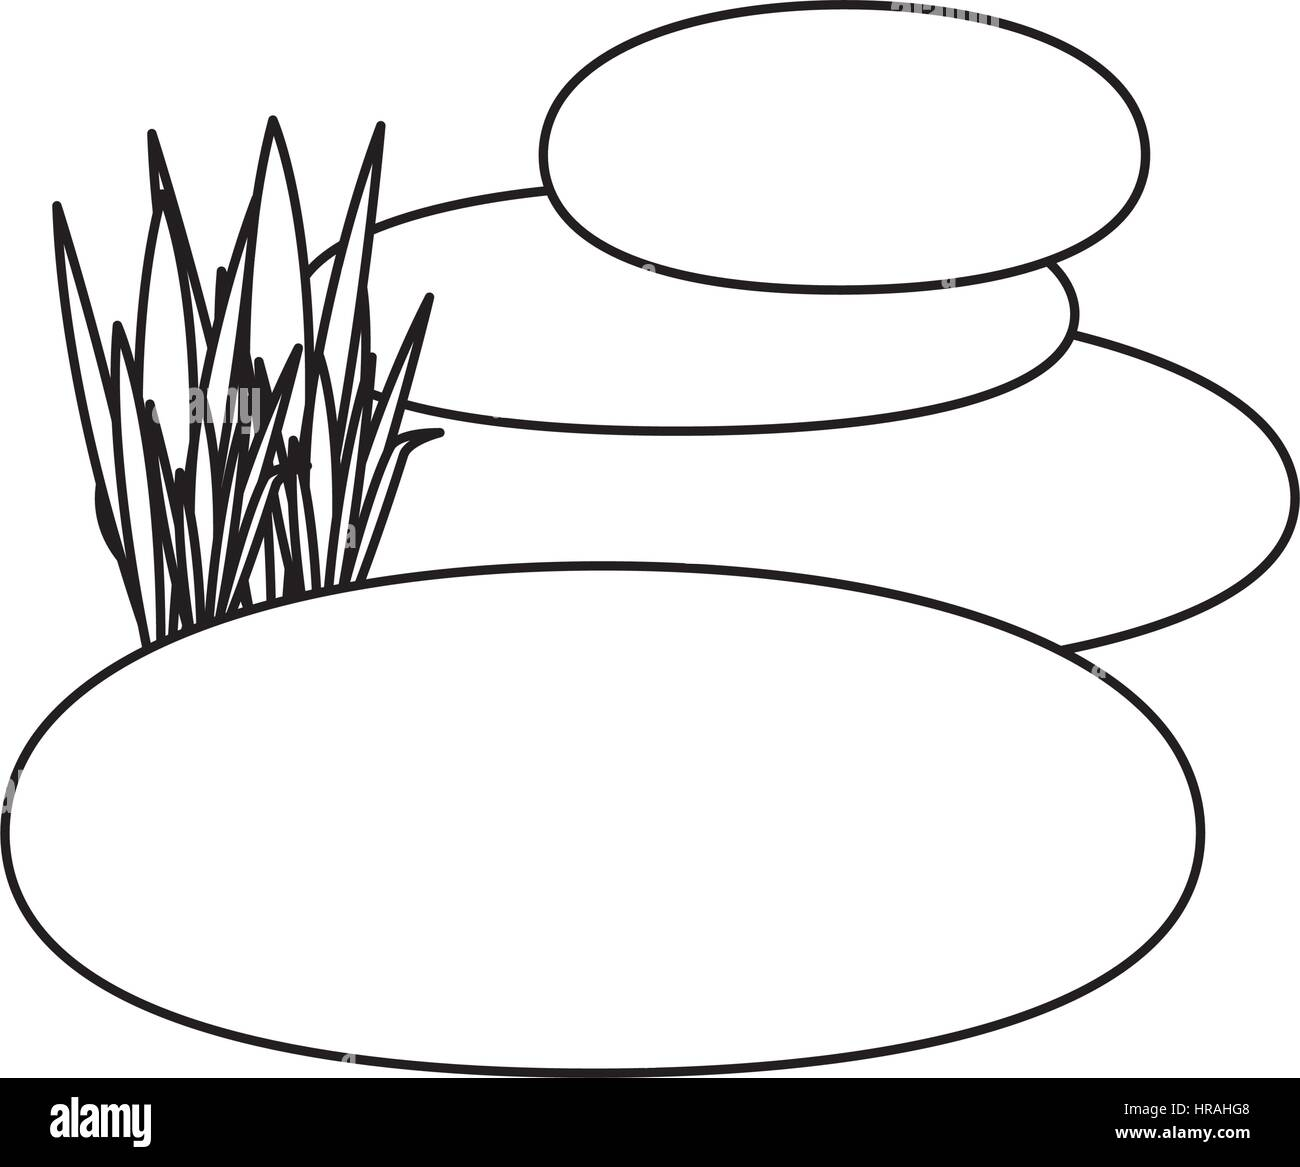 contour of spa therapy lava stones and grass - Stock Vector